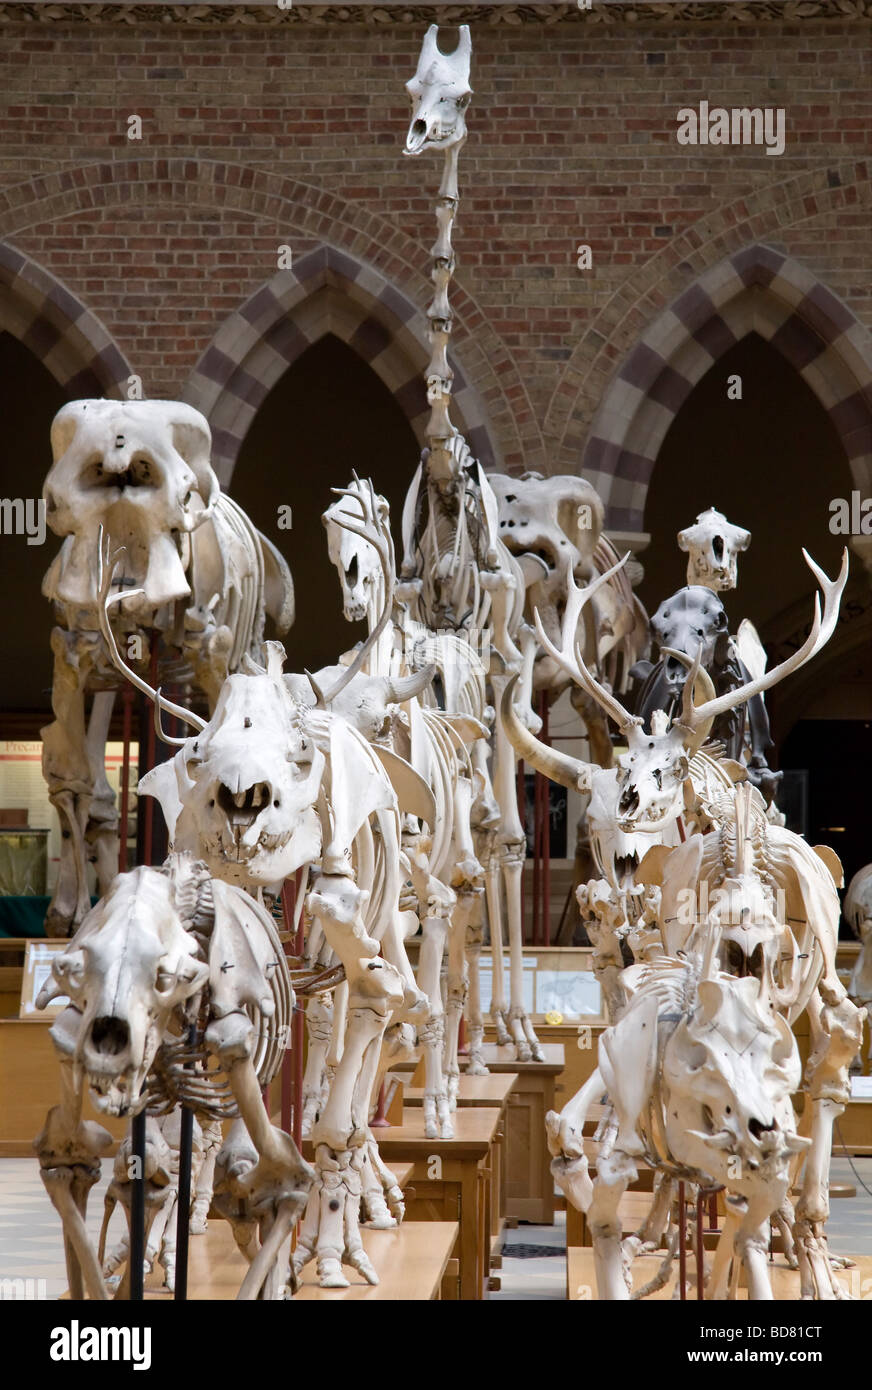 March of the skeletons- Pitt Rivers Museum Oxford - Stock Image